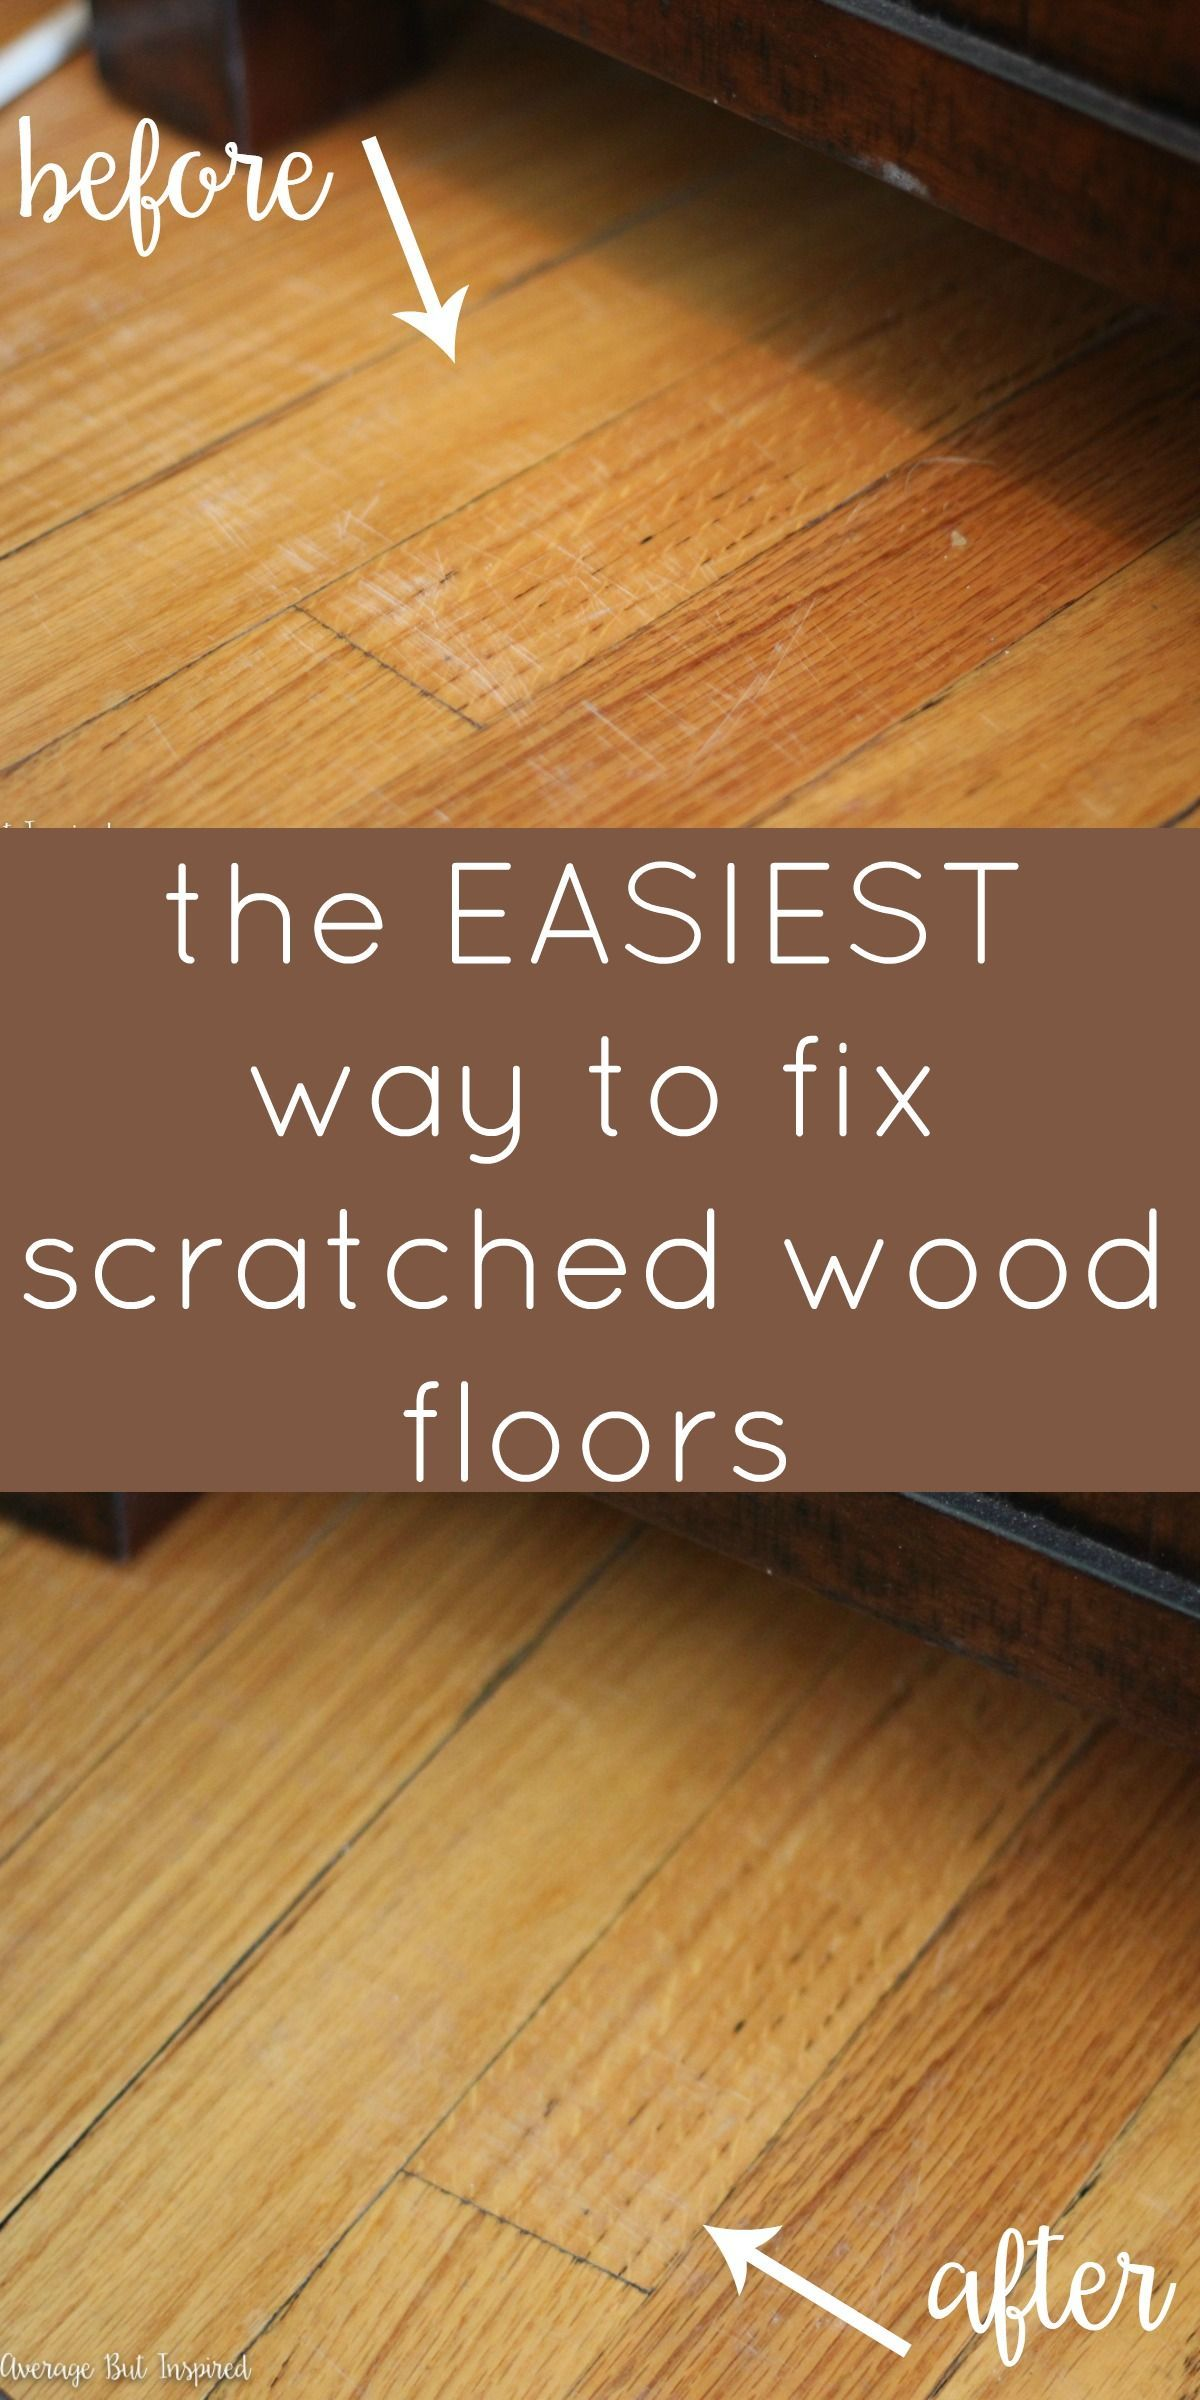 How To Get Rid Of Film On Laminate Floors